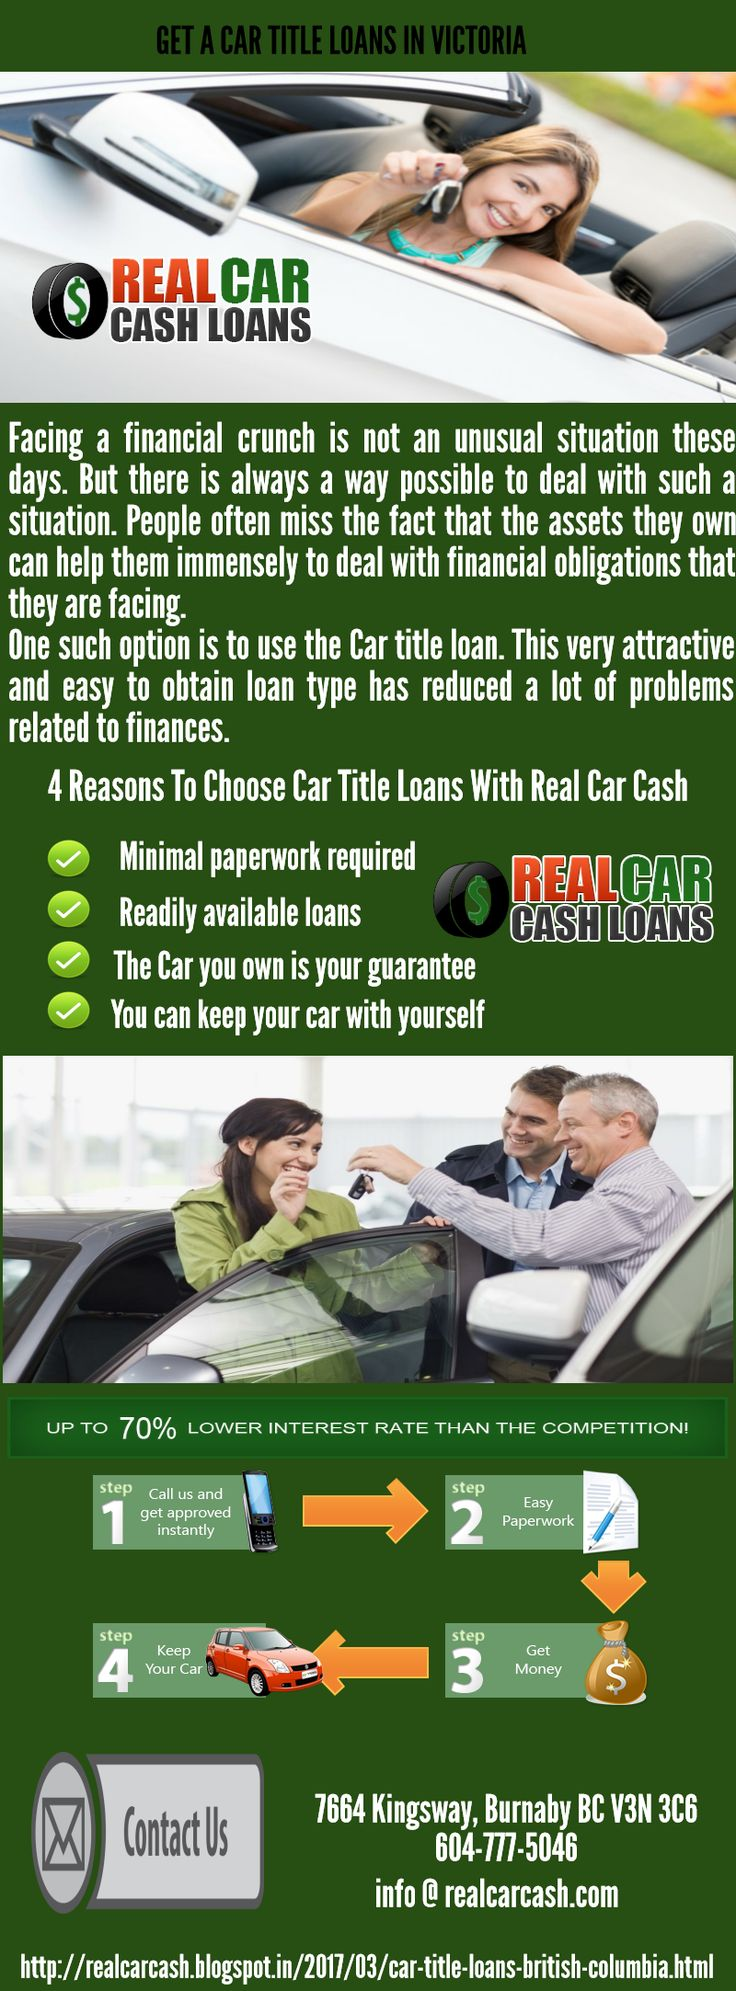 Payday loans summerville sc image 5